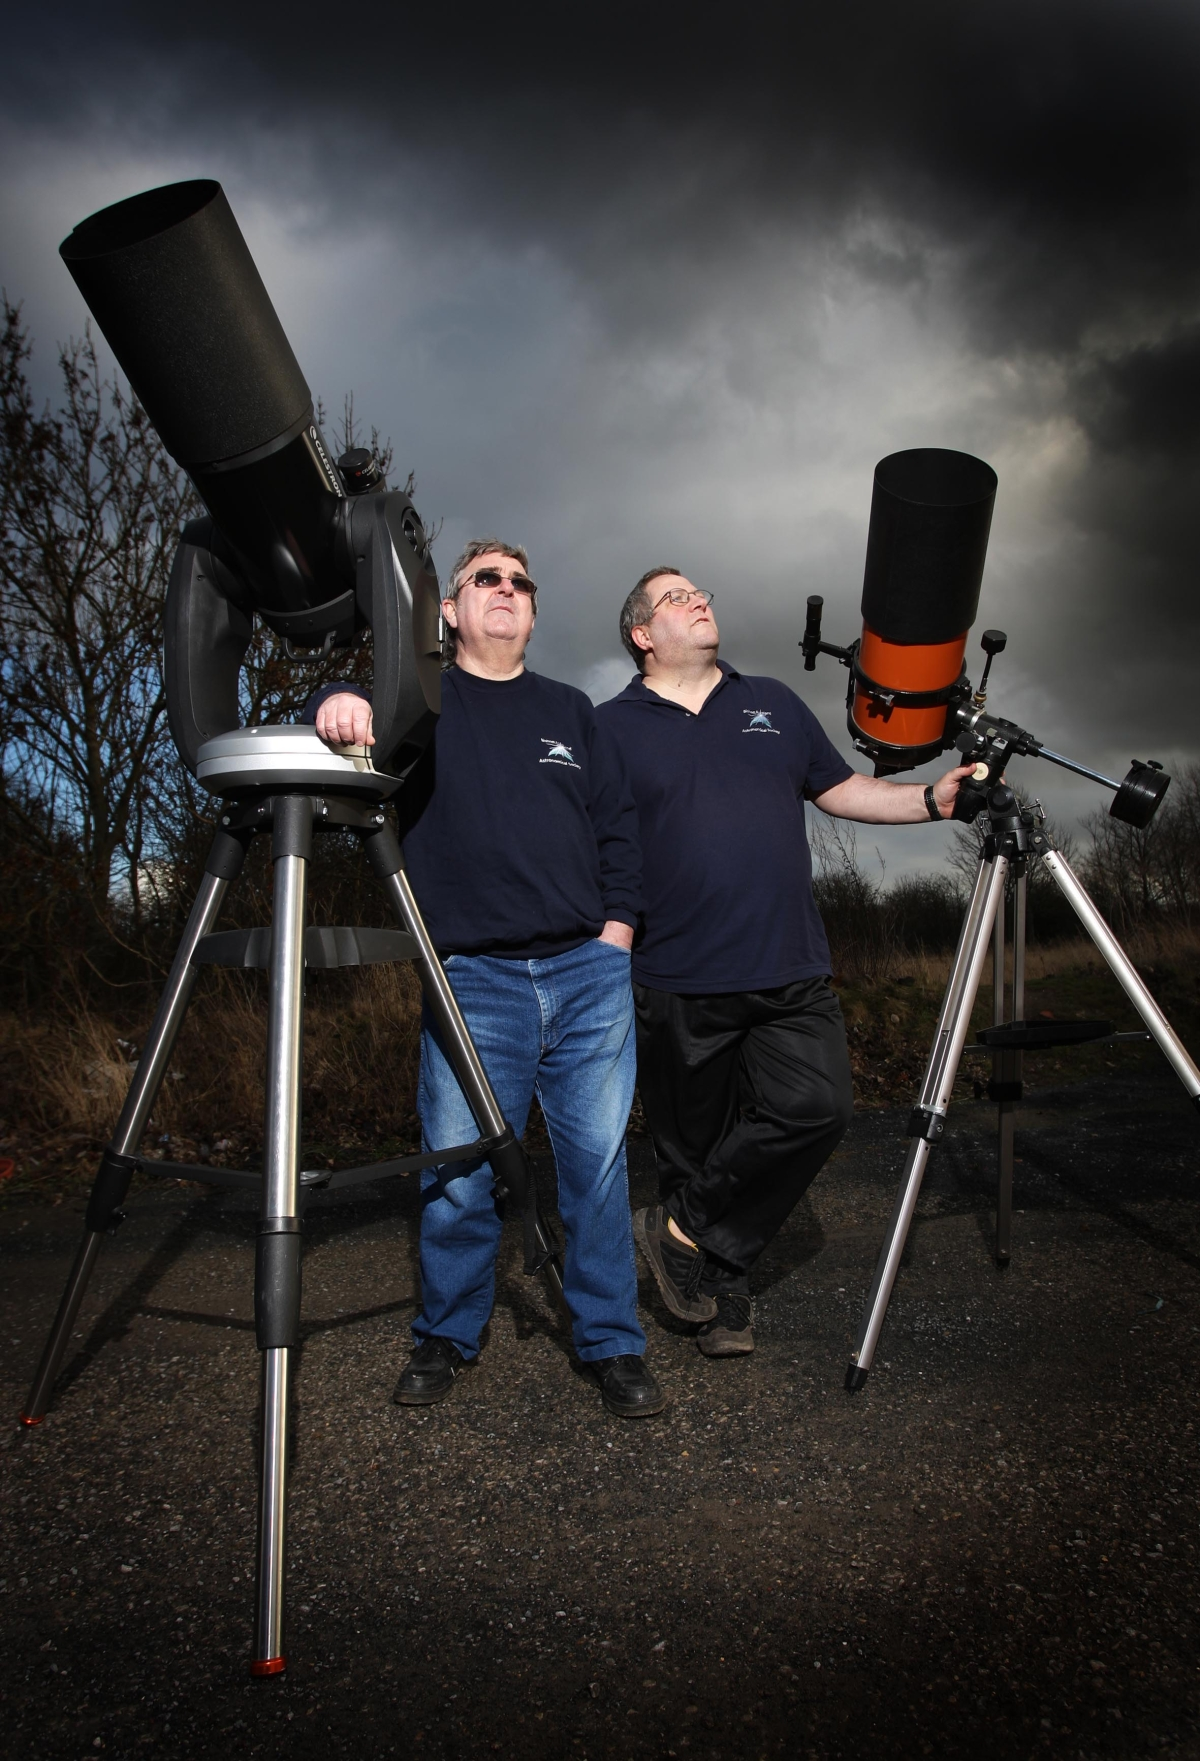 Co-founders of Bishop Auckland Astronomical Society, Duane Cox (left) and Karl Jennings (right) are giving a talk and demo at a Dark Skies event, organized by North Pennines Area of Outstanding Natural Beauty.